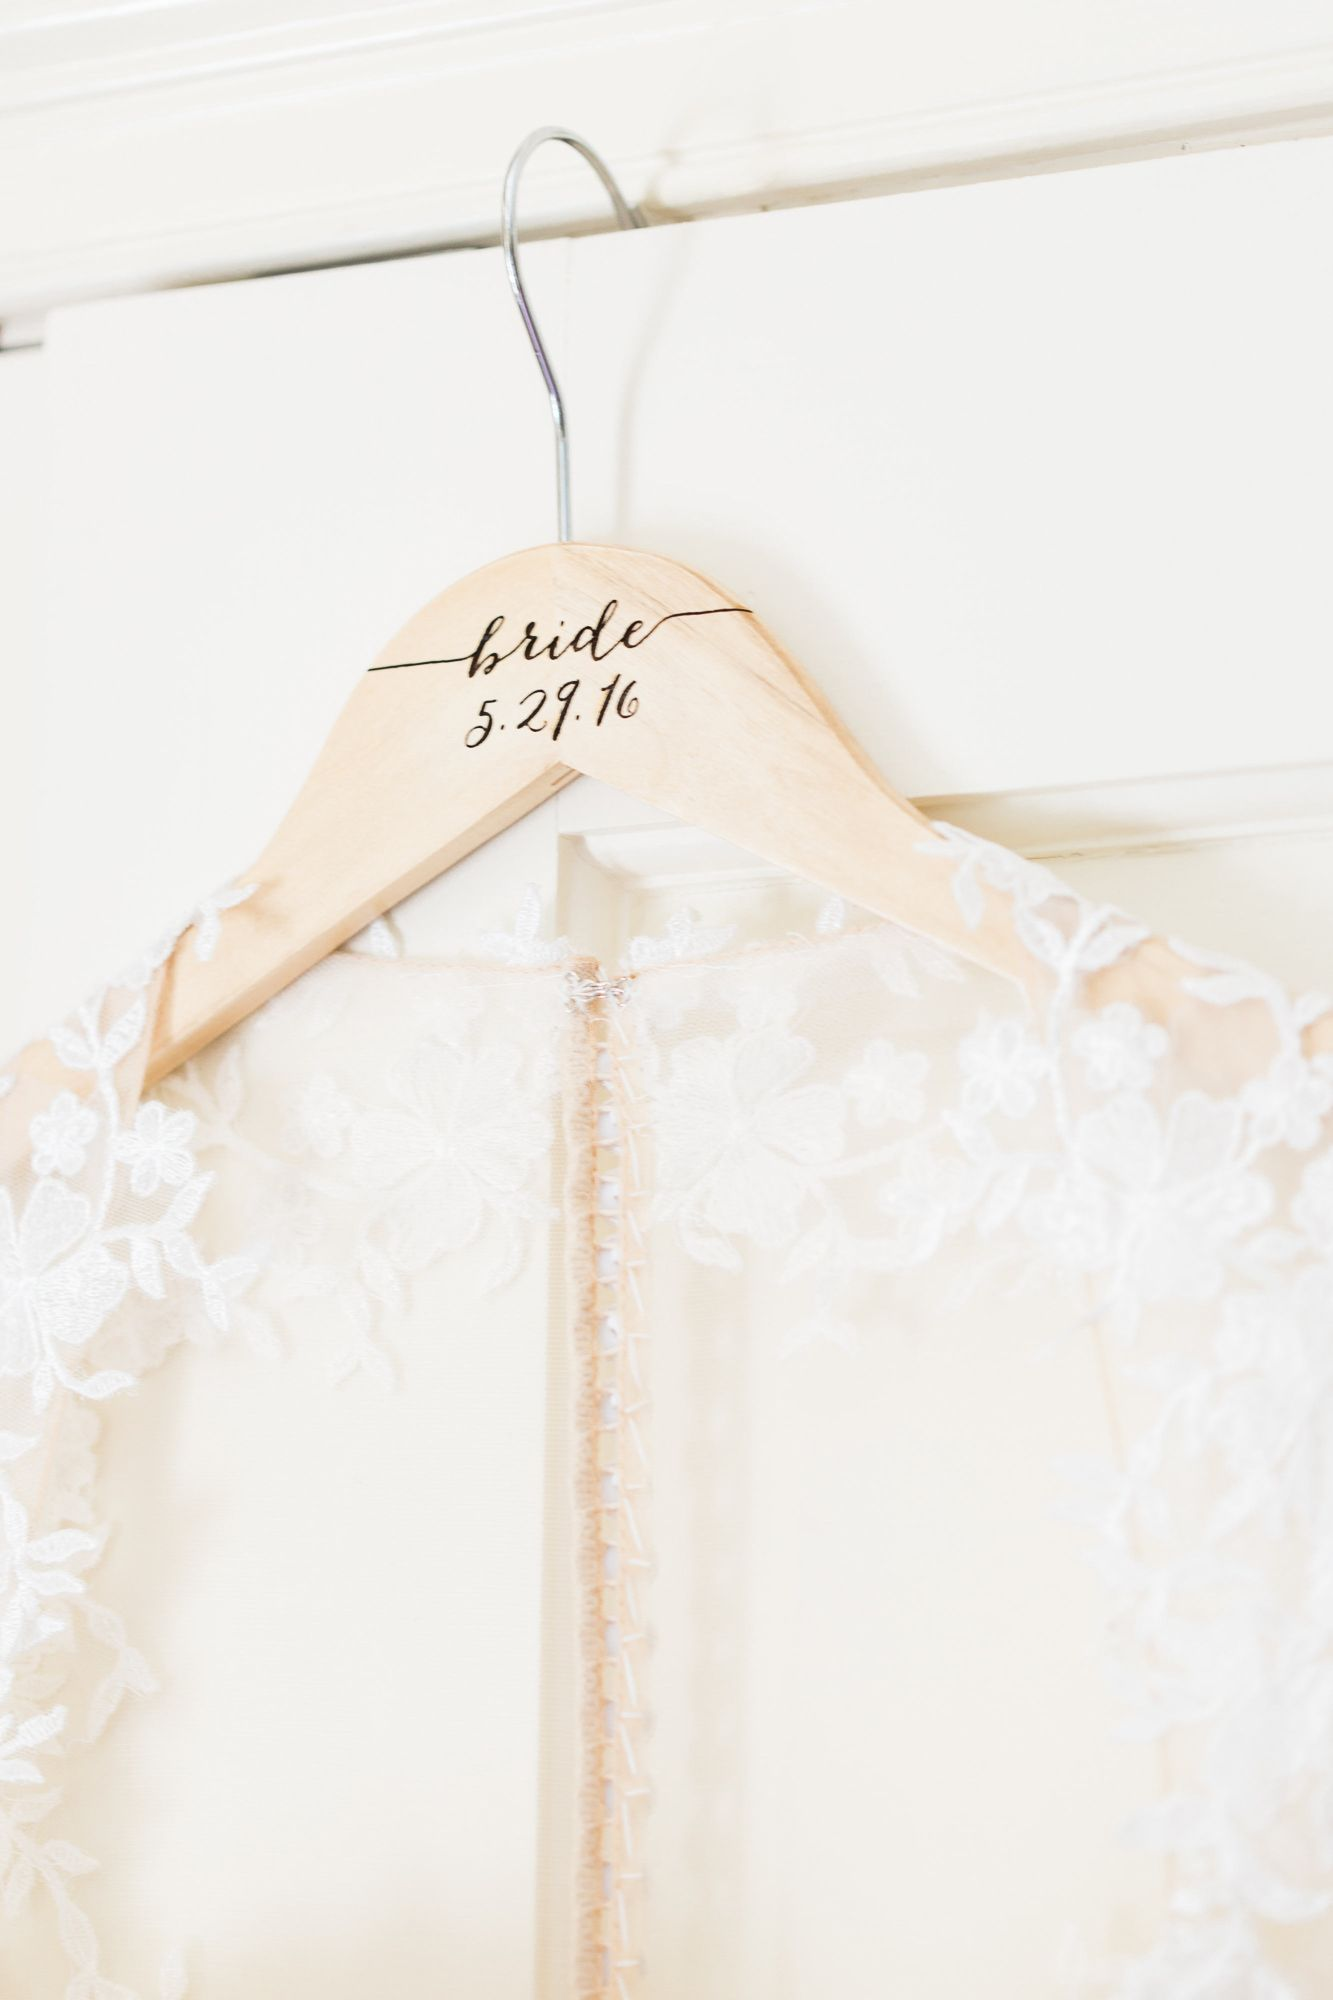 Wedding Hanger With Name For Bride And Bridesmaids Wedding Etsy Bridal Party Hangers Wedding Hangers Bridal Hangers